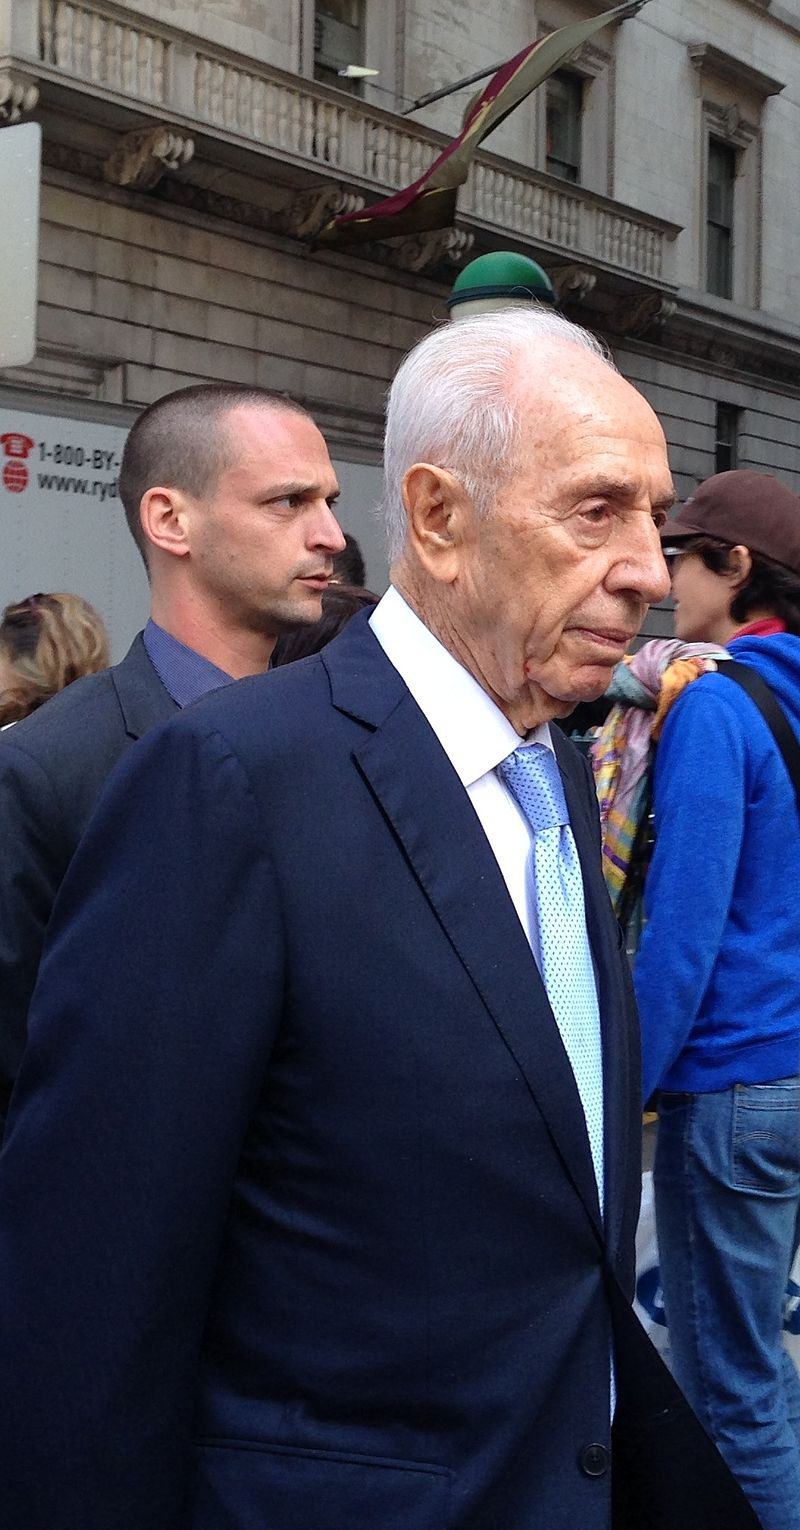 Former Israeli President Shimon Peres in 2014. Credit: Wikimedia Commons.